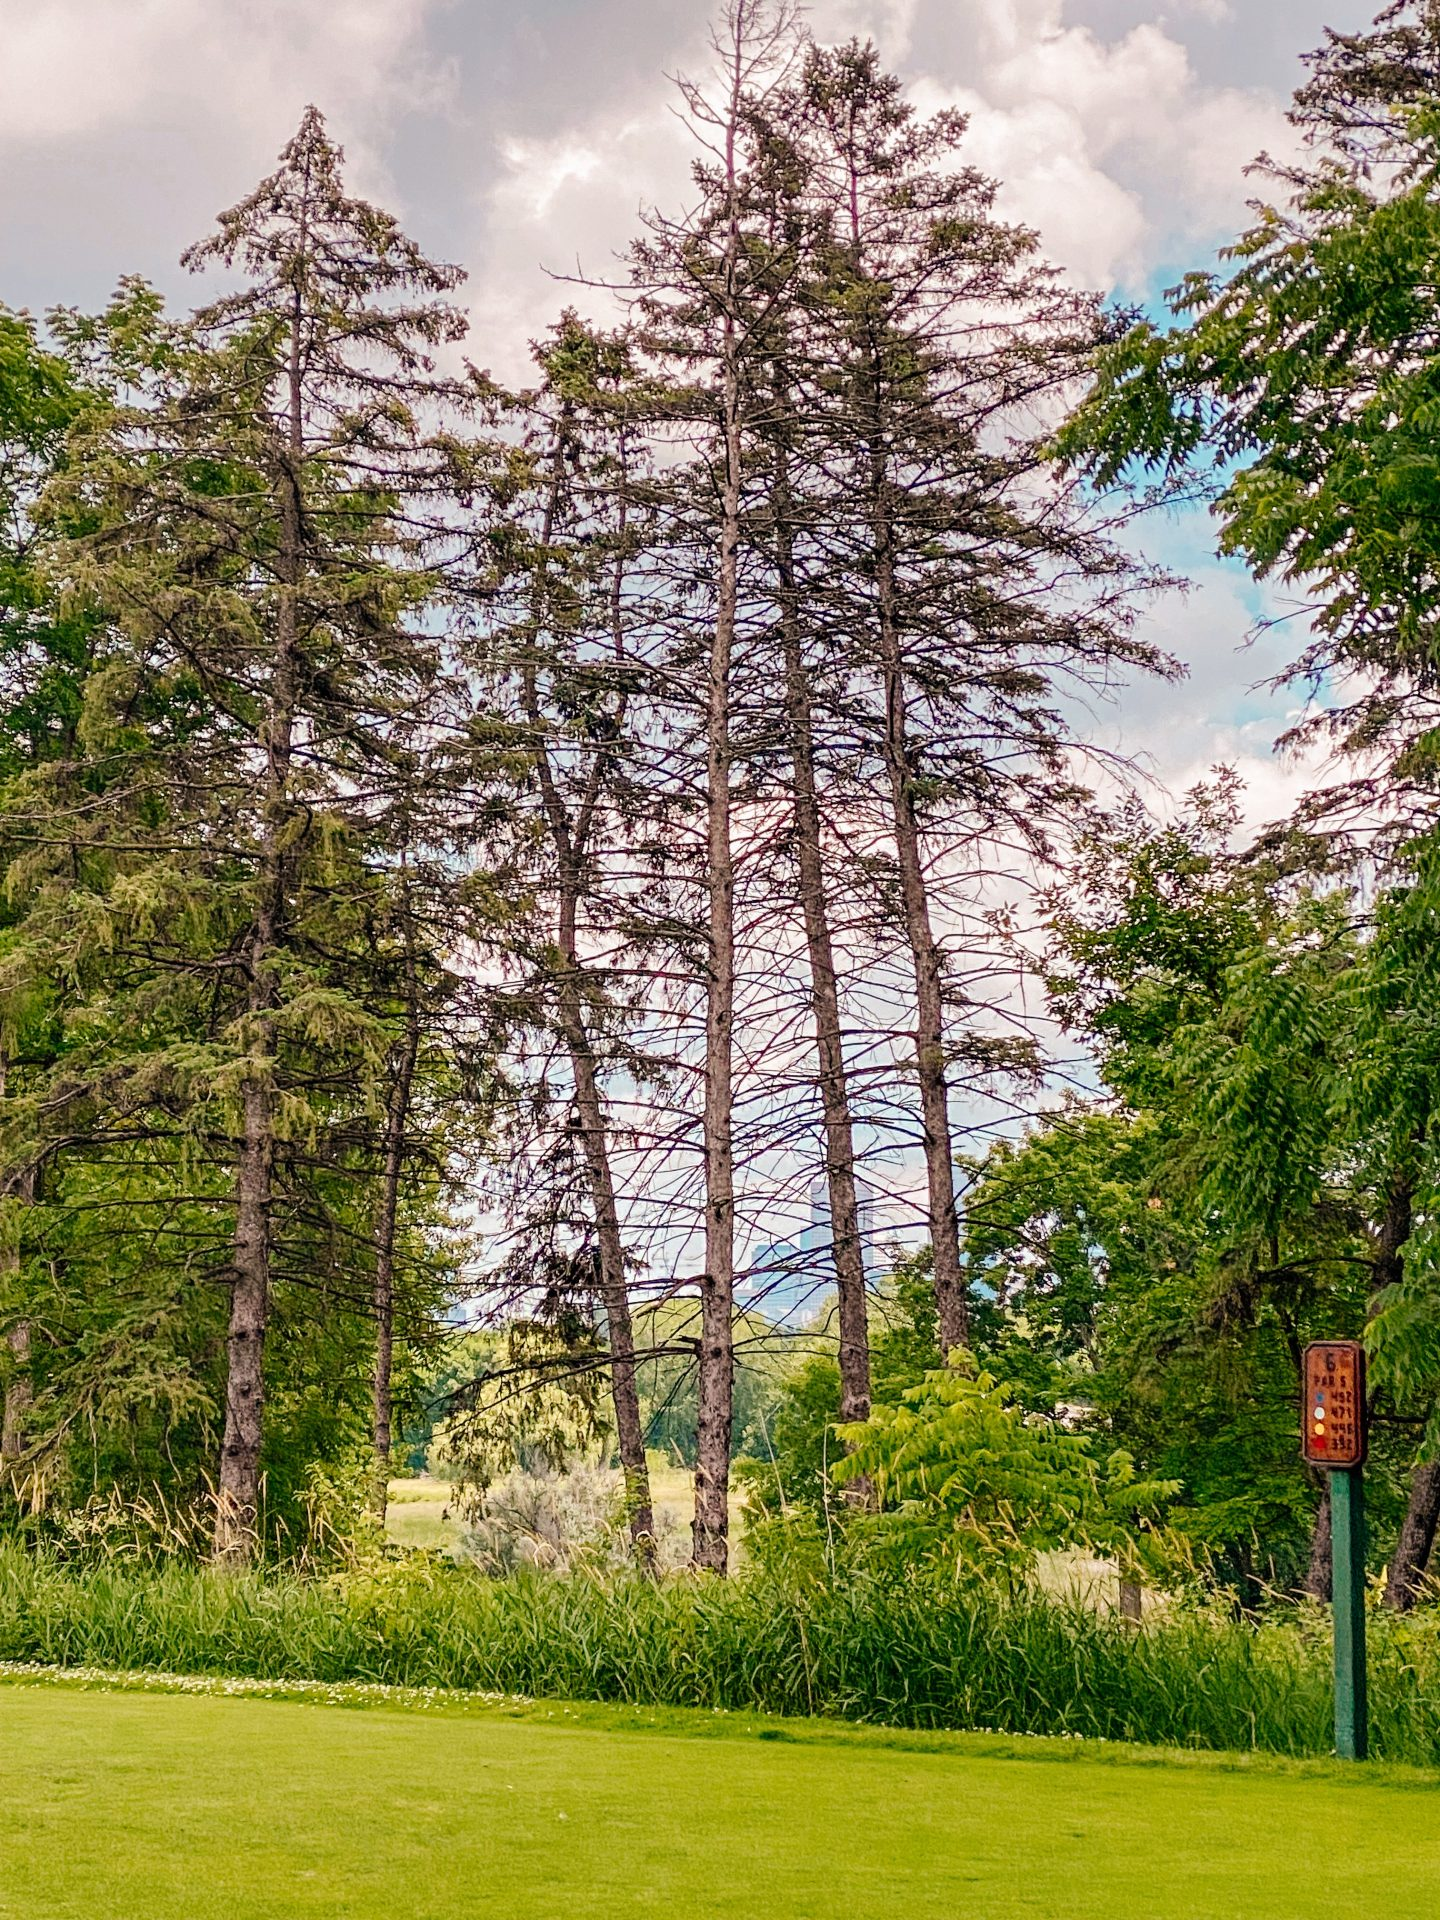 view through the trees of downtown Minneapolis at Theodore Wirth Golf Club